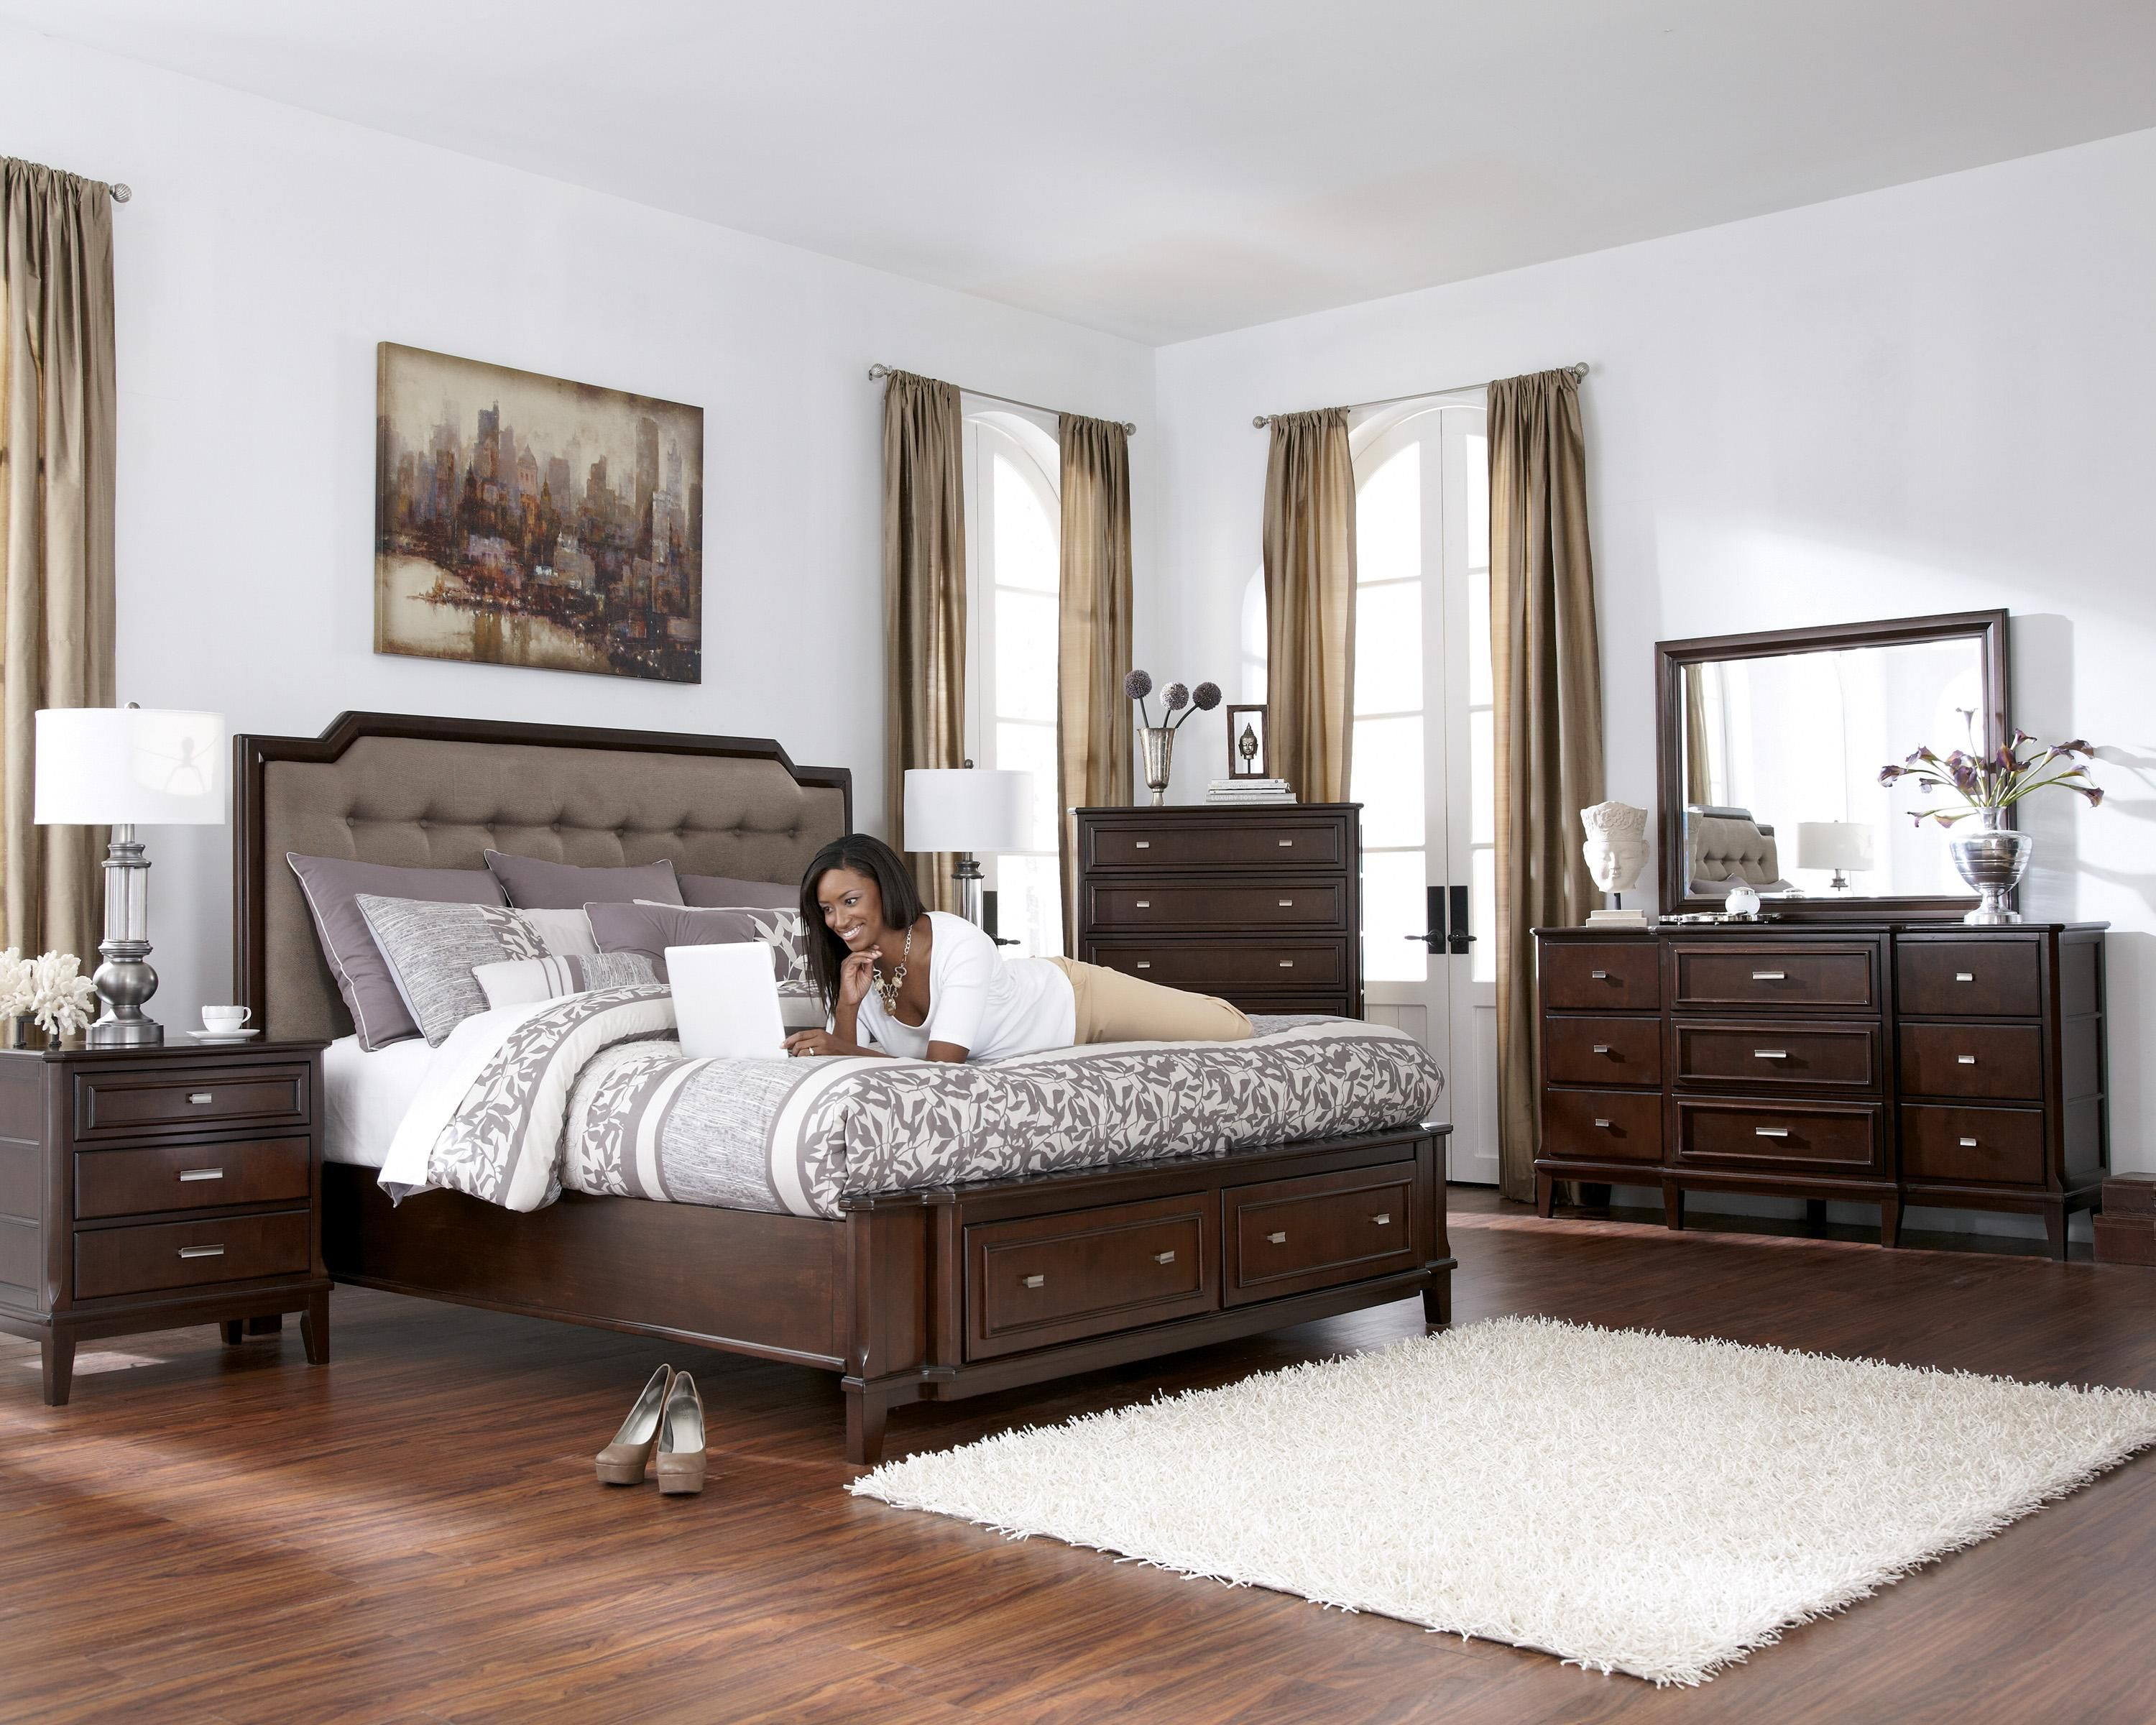 Larimer Upholstered Headboard Bedroom Set With Button Tufting In Dark Brown